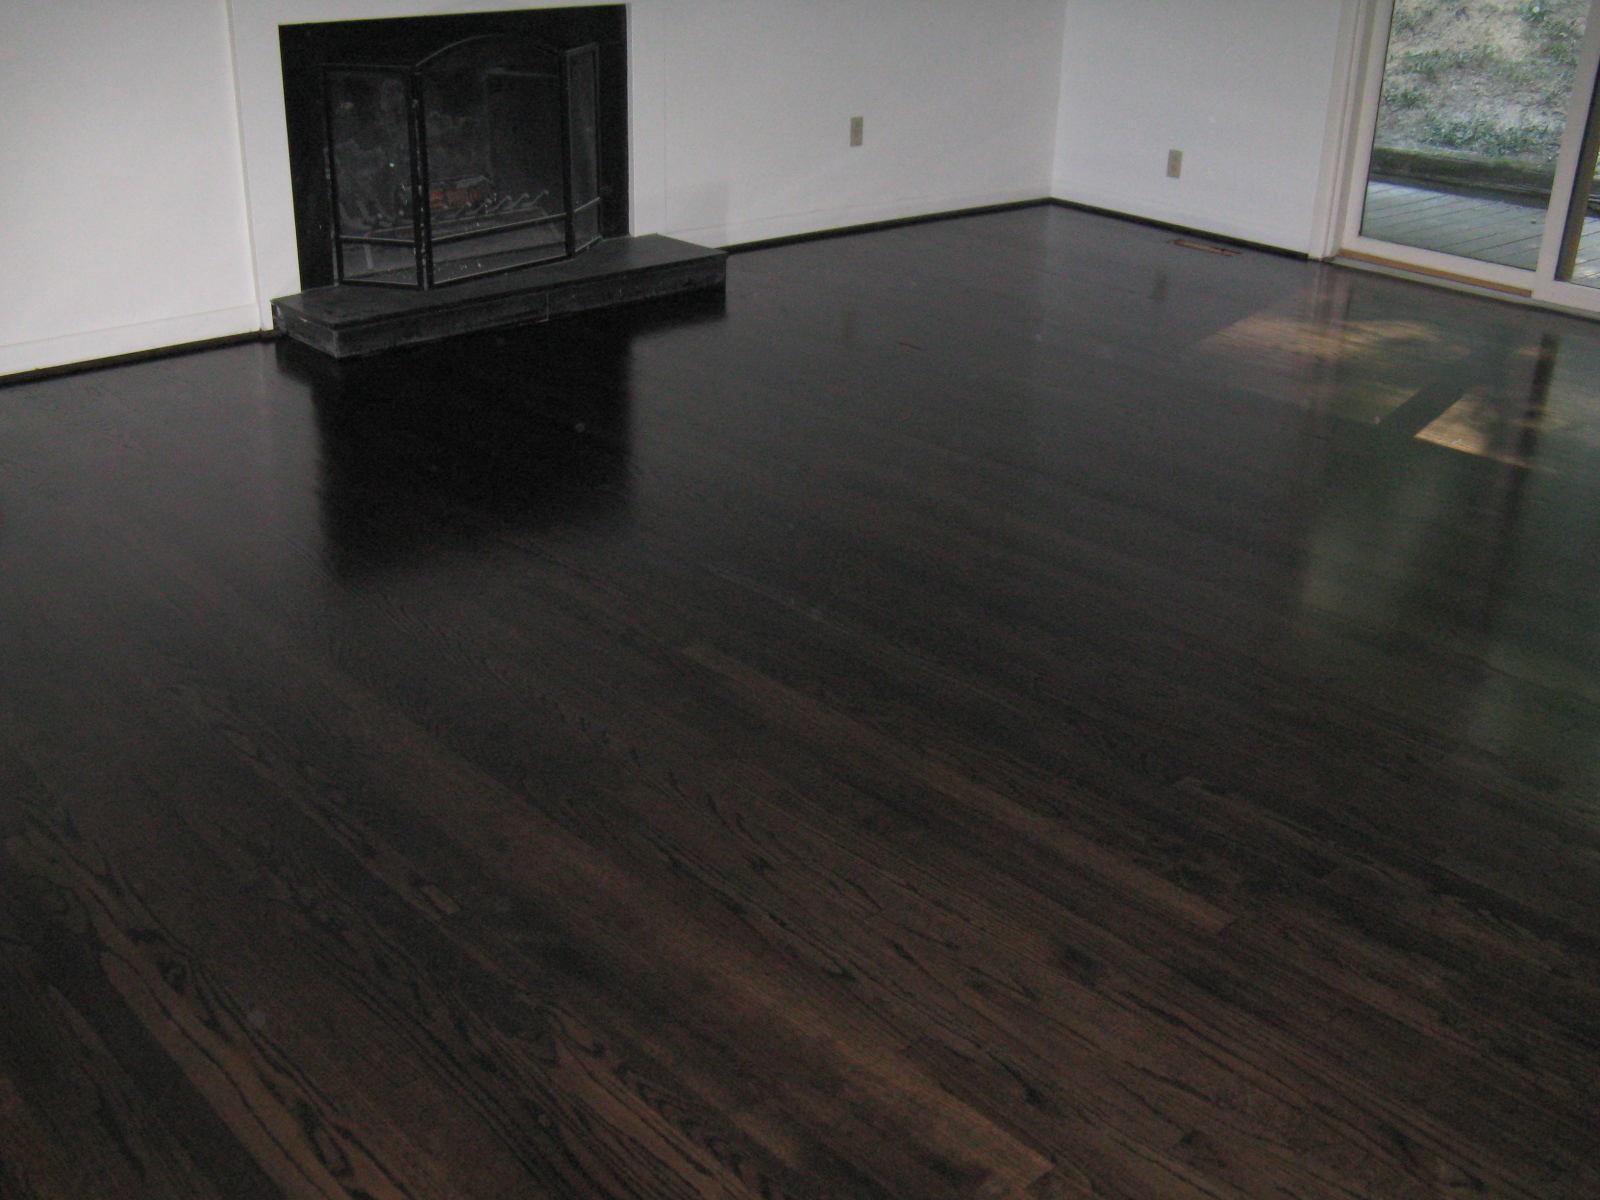 Ebony stained hardwood floors m o d f r u g a l for Staining hardwood floors